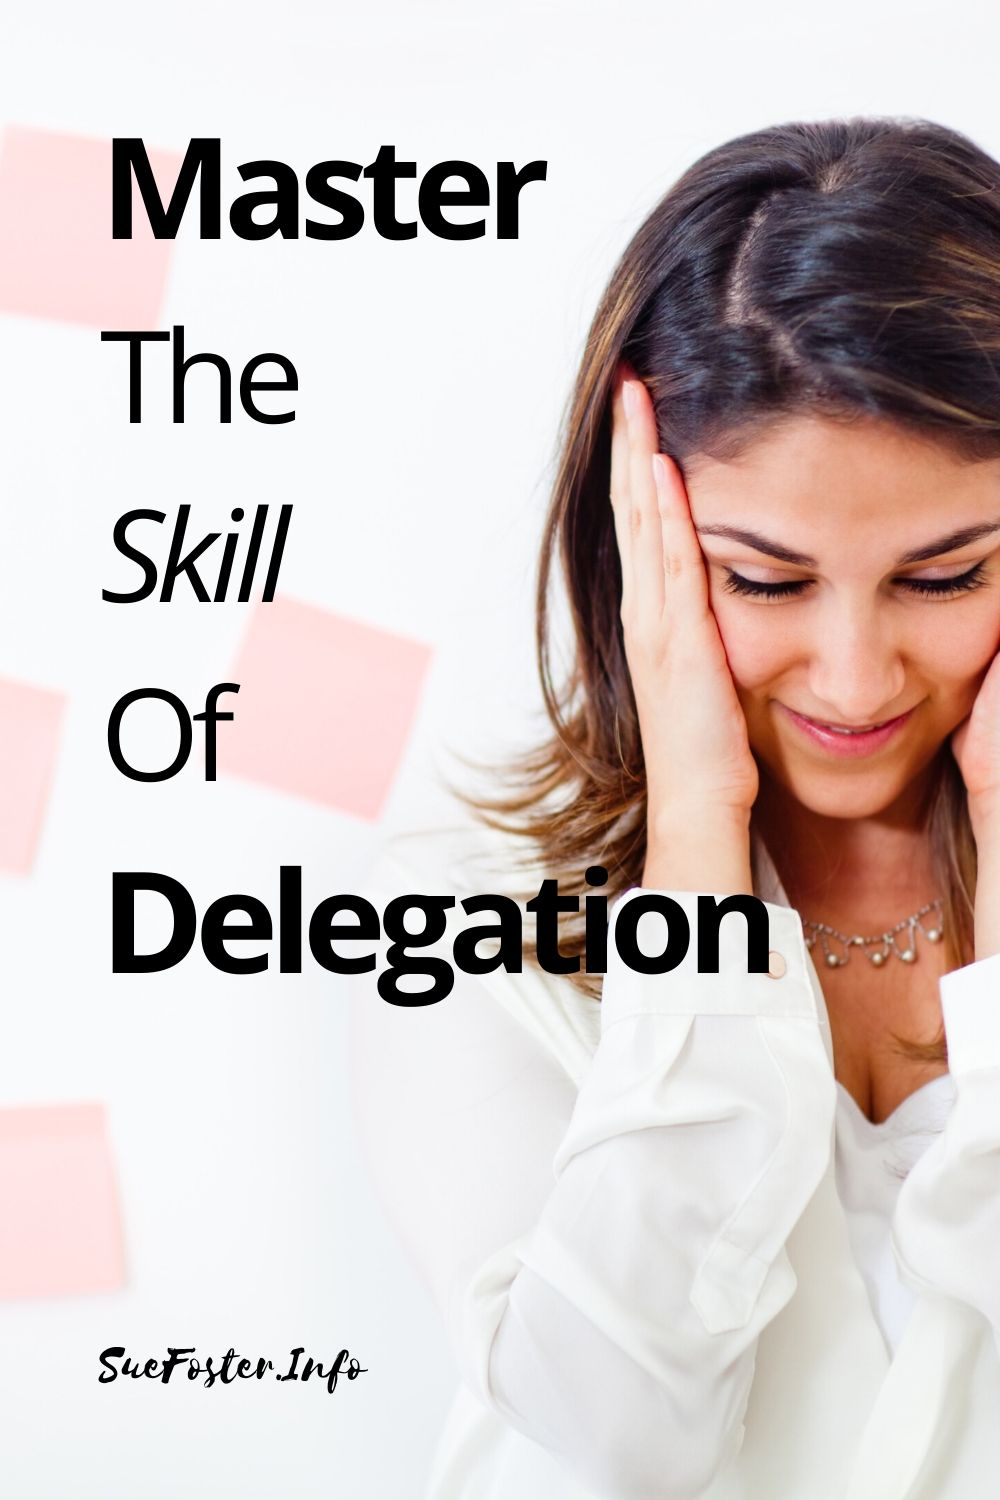 Master the Skill of Delegation with These Practices in Daily Life